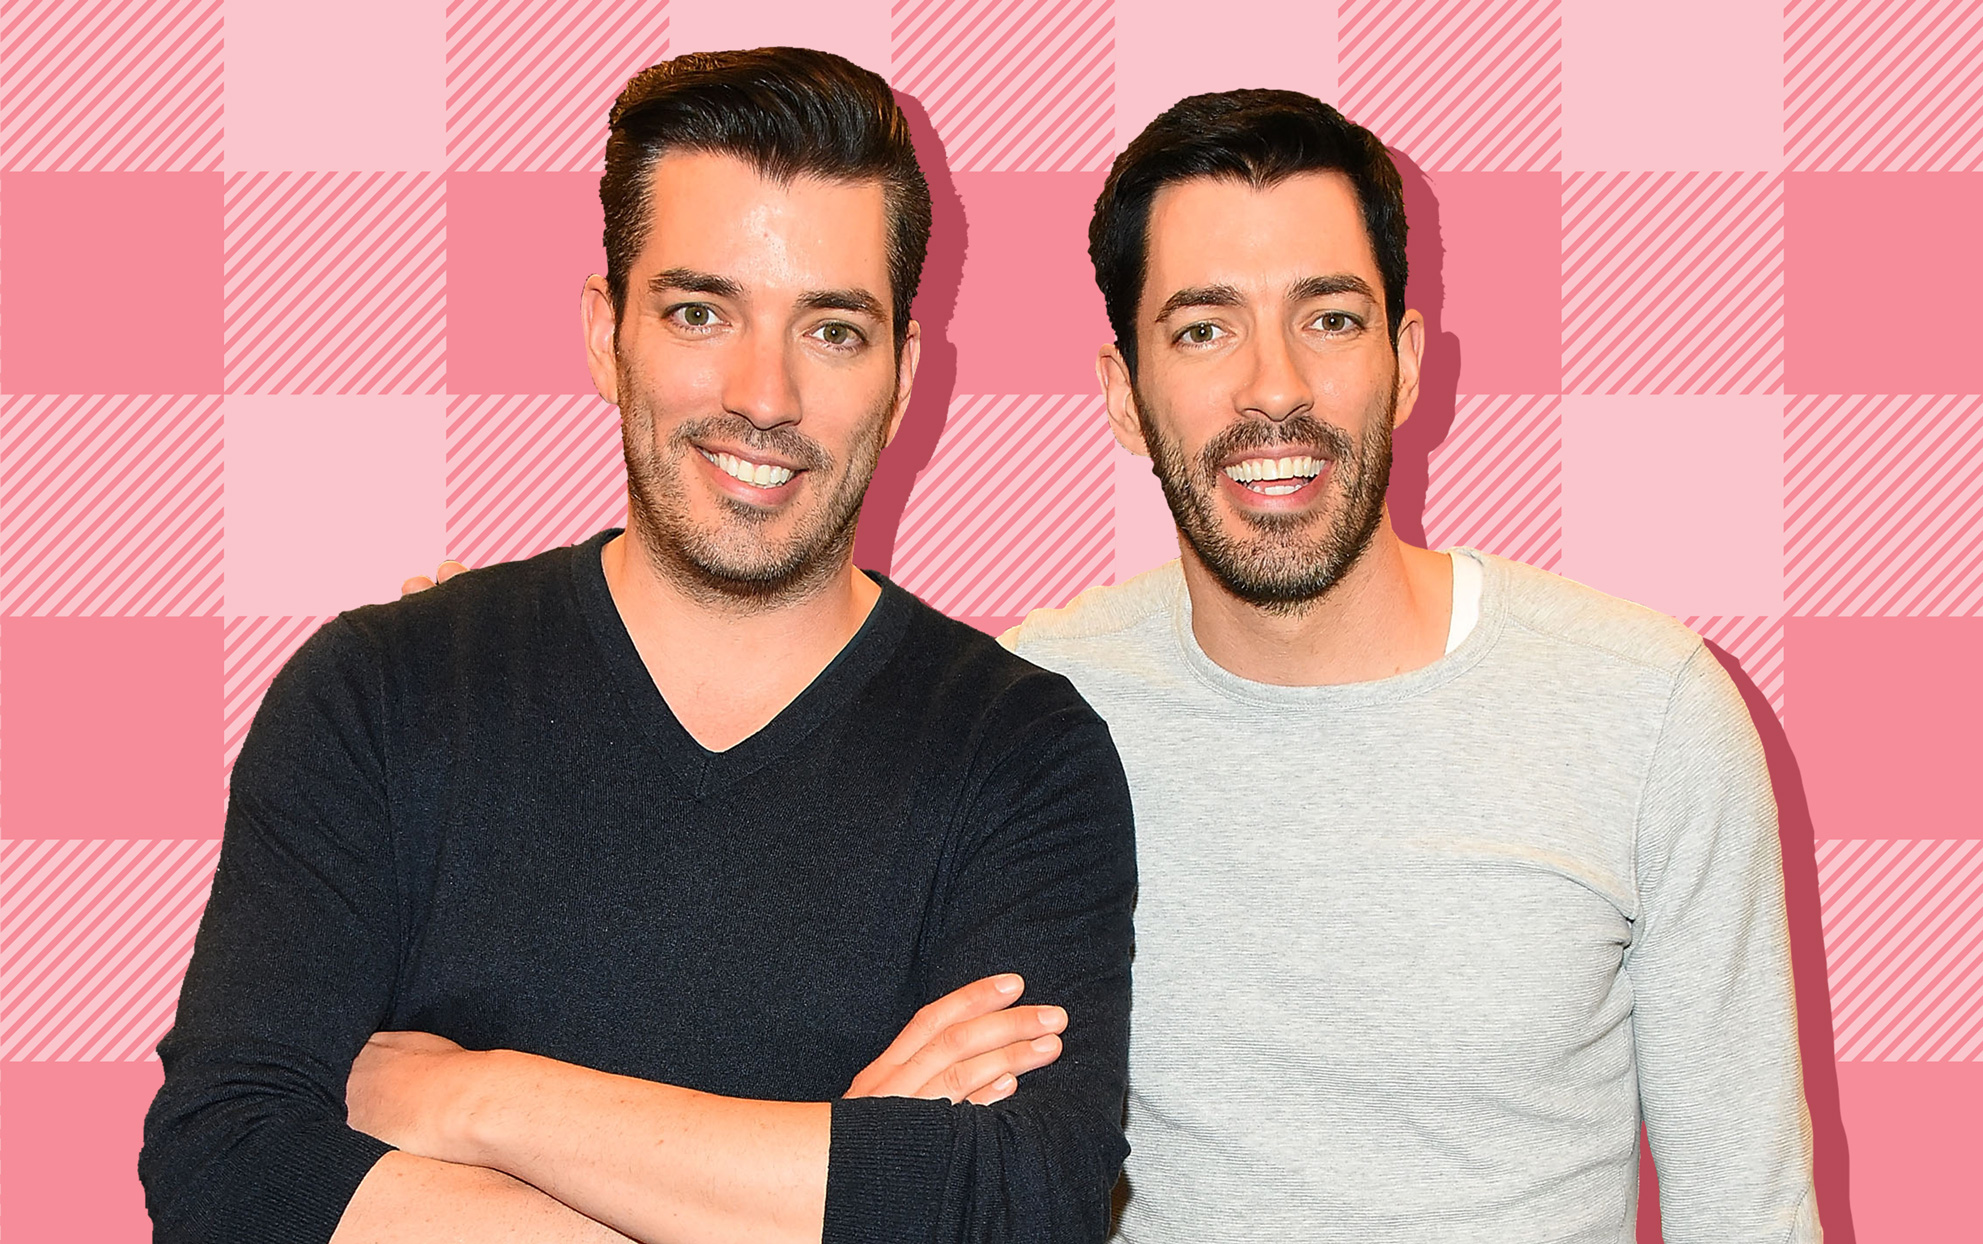 The Property Brothers on a pink patterned background